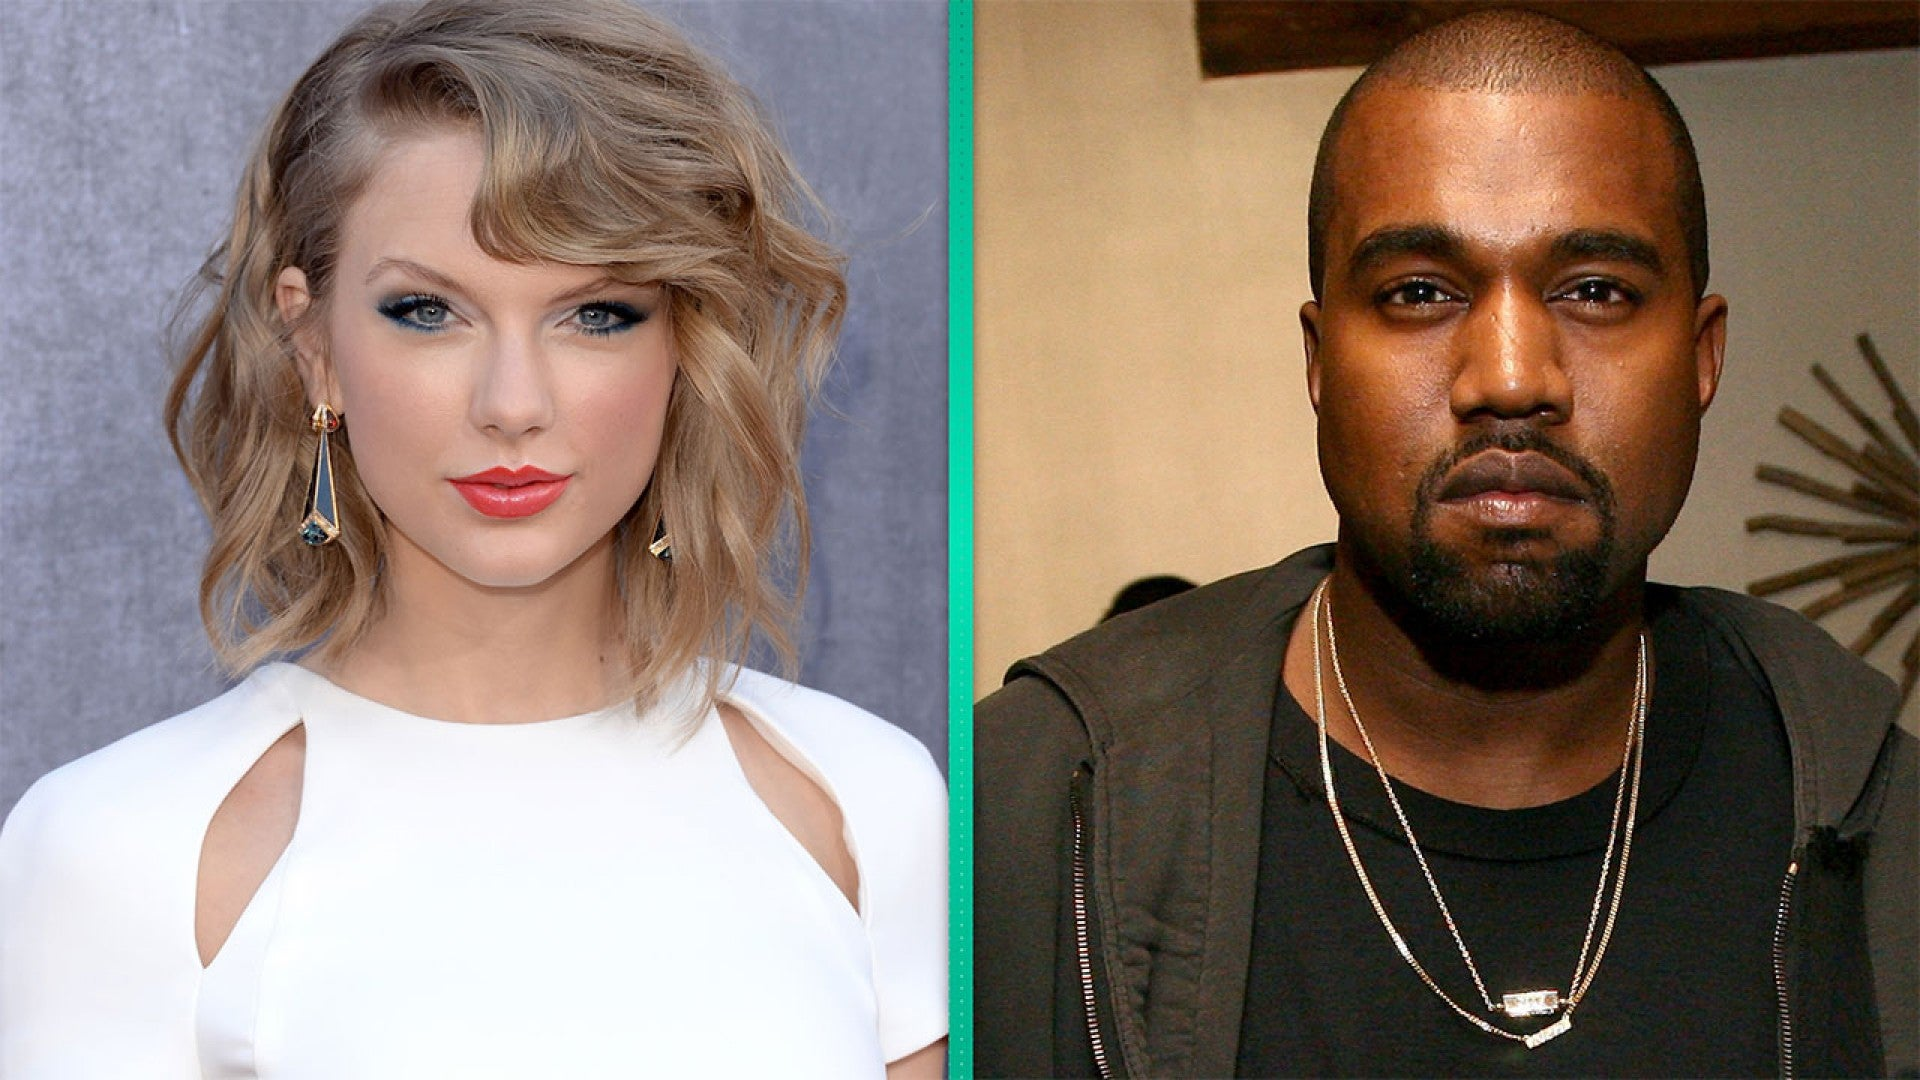 Taylor Swift S Brother Throws Out His Yeezy Sneakers After Kanye Calls Her Out In New Rap Entertainment Tonight